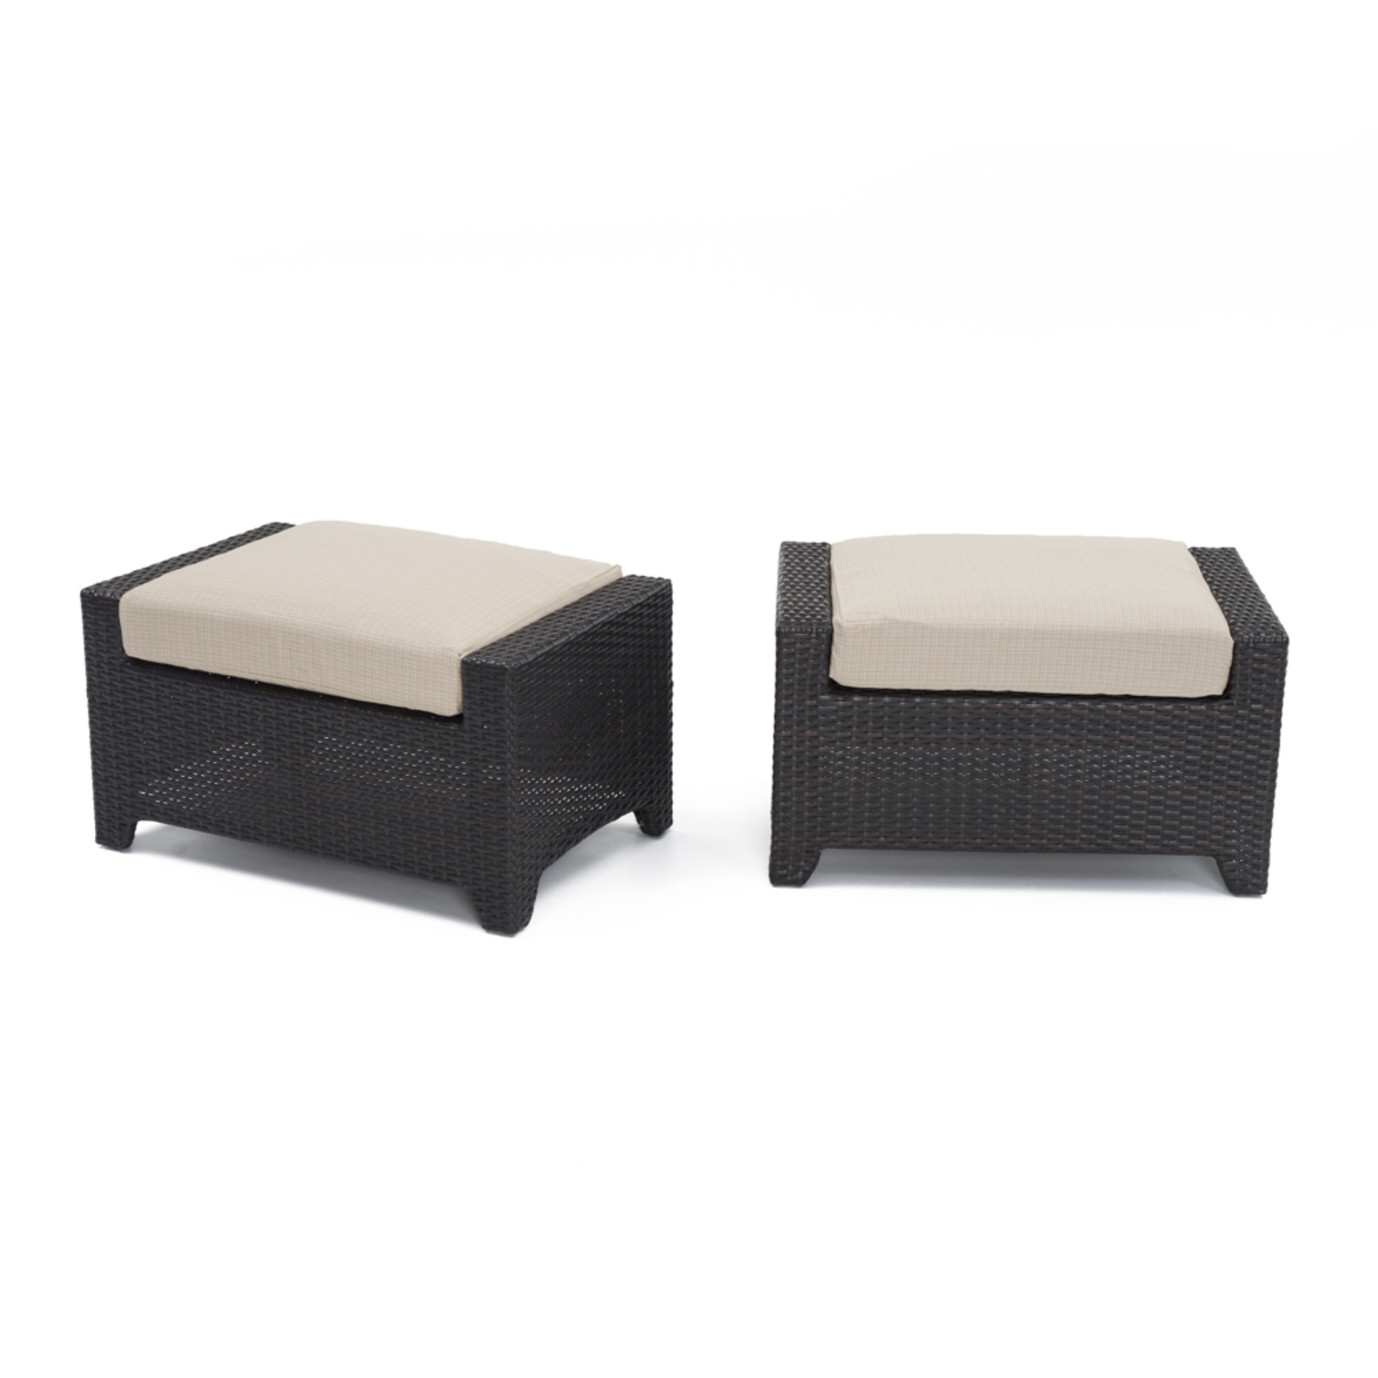 Deco™ Club Ottomans - Slate Gray